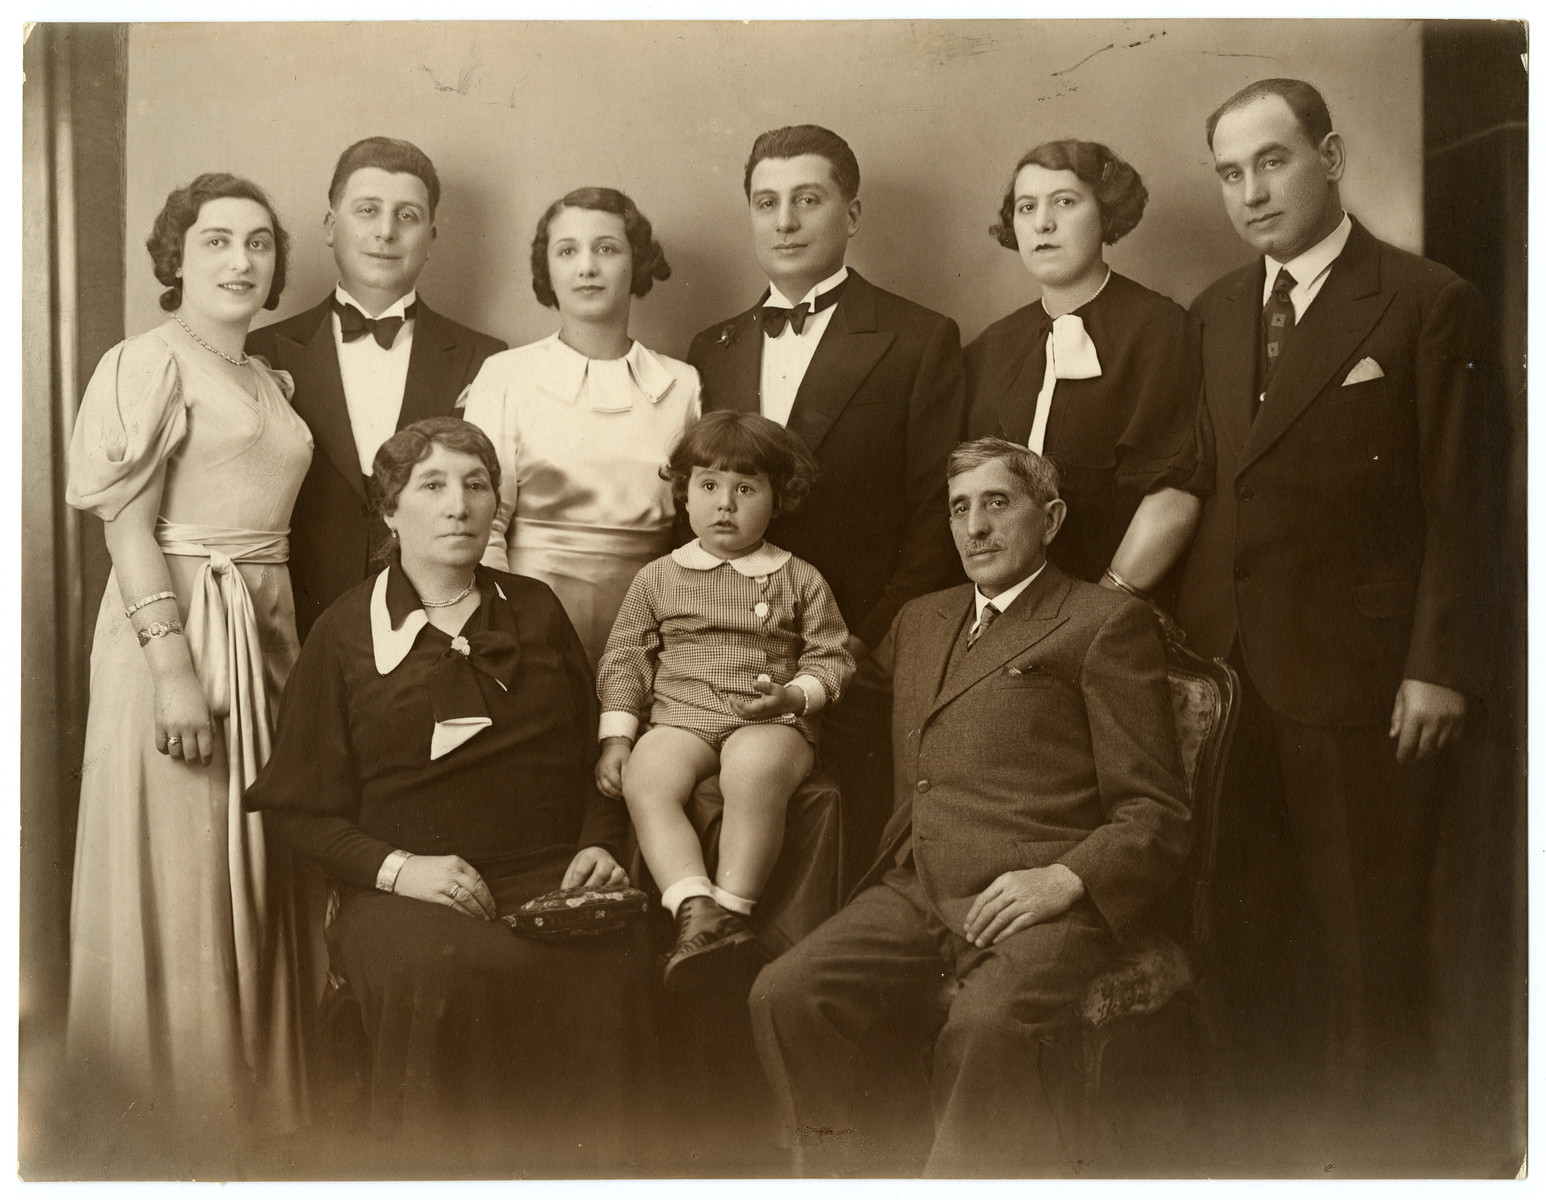 Wedding portrait of Dora Austein and Emil Tennenbaum and their extended families.